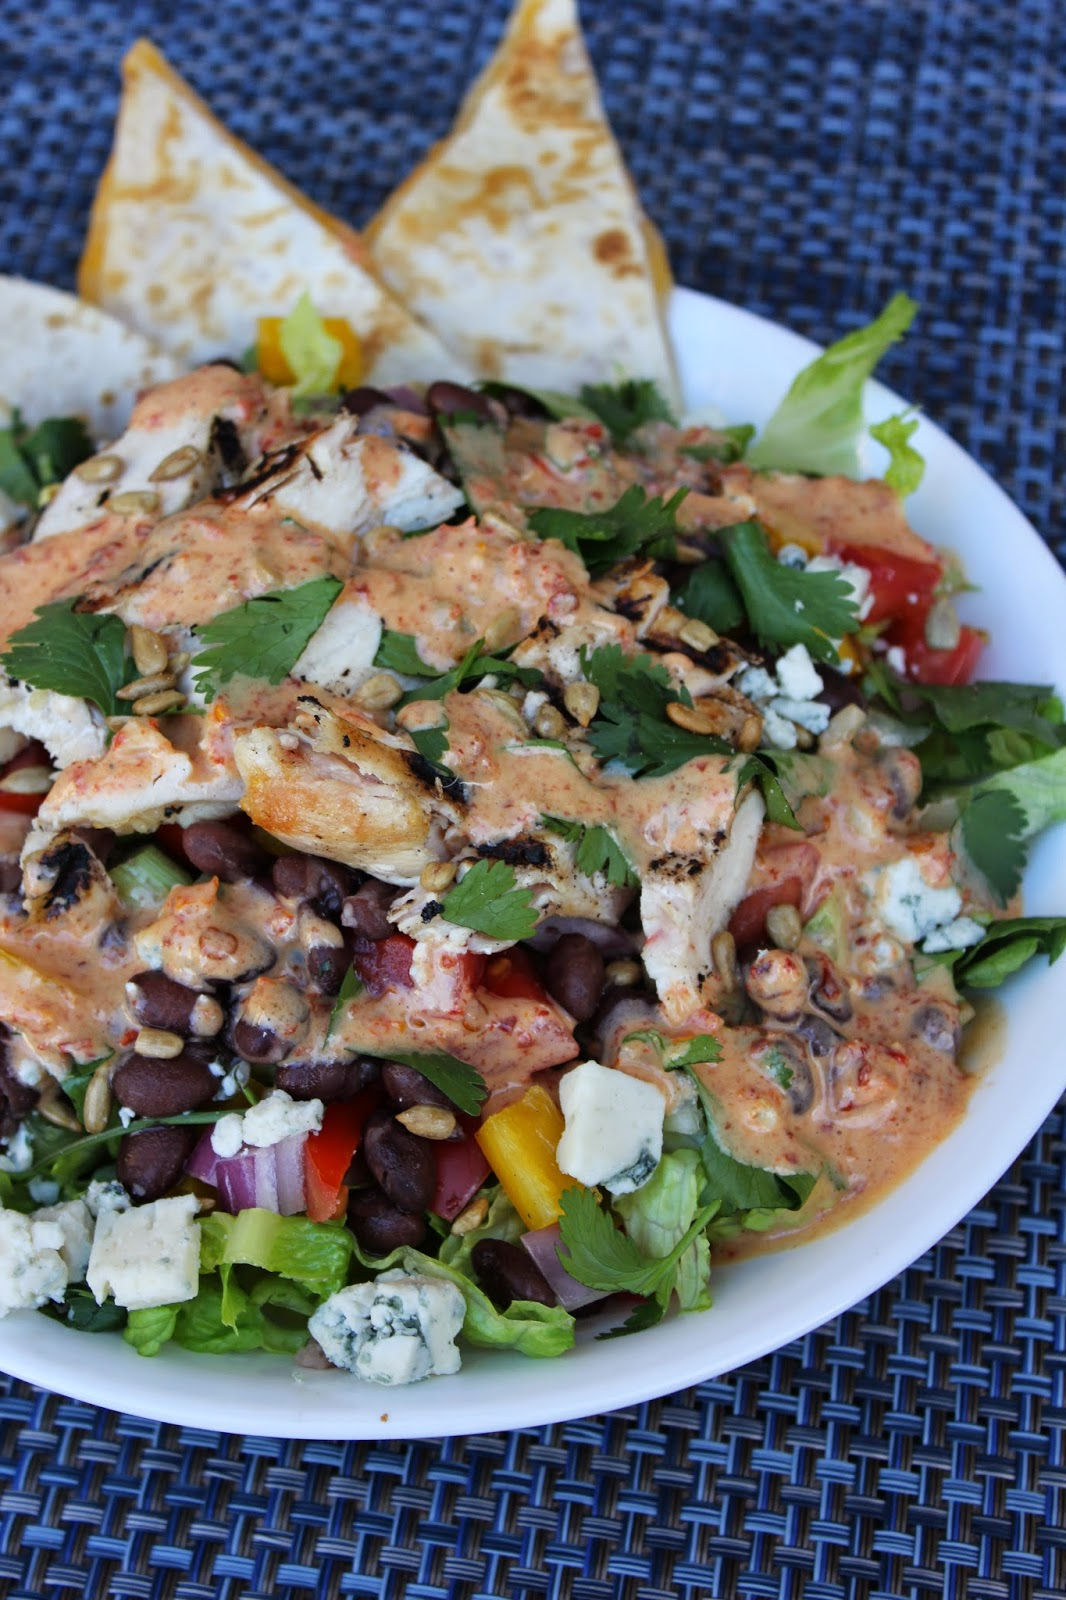 players sports grill chicken chipotle salad spicy healthy vegetarian